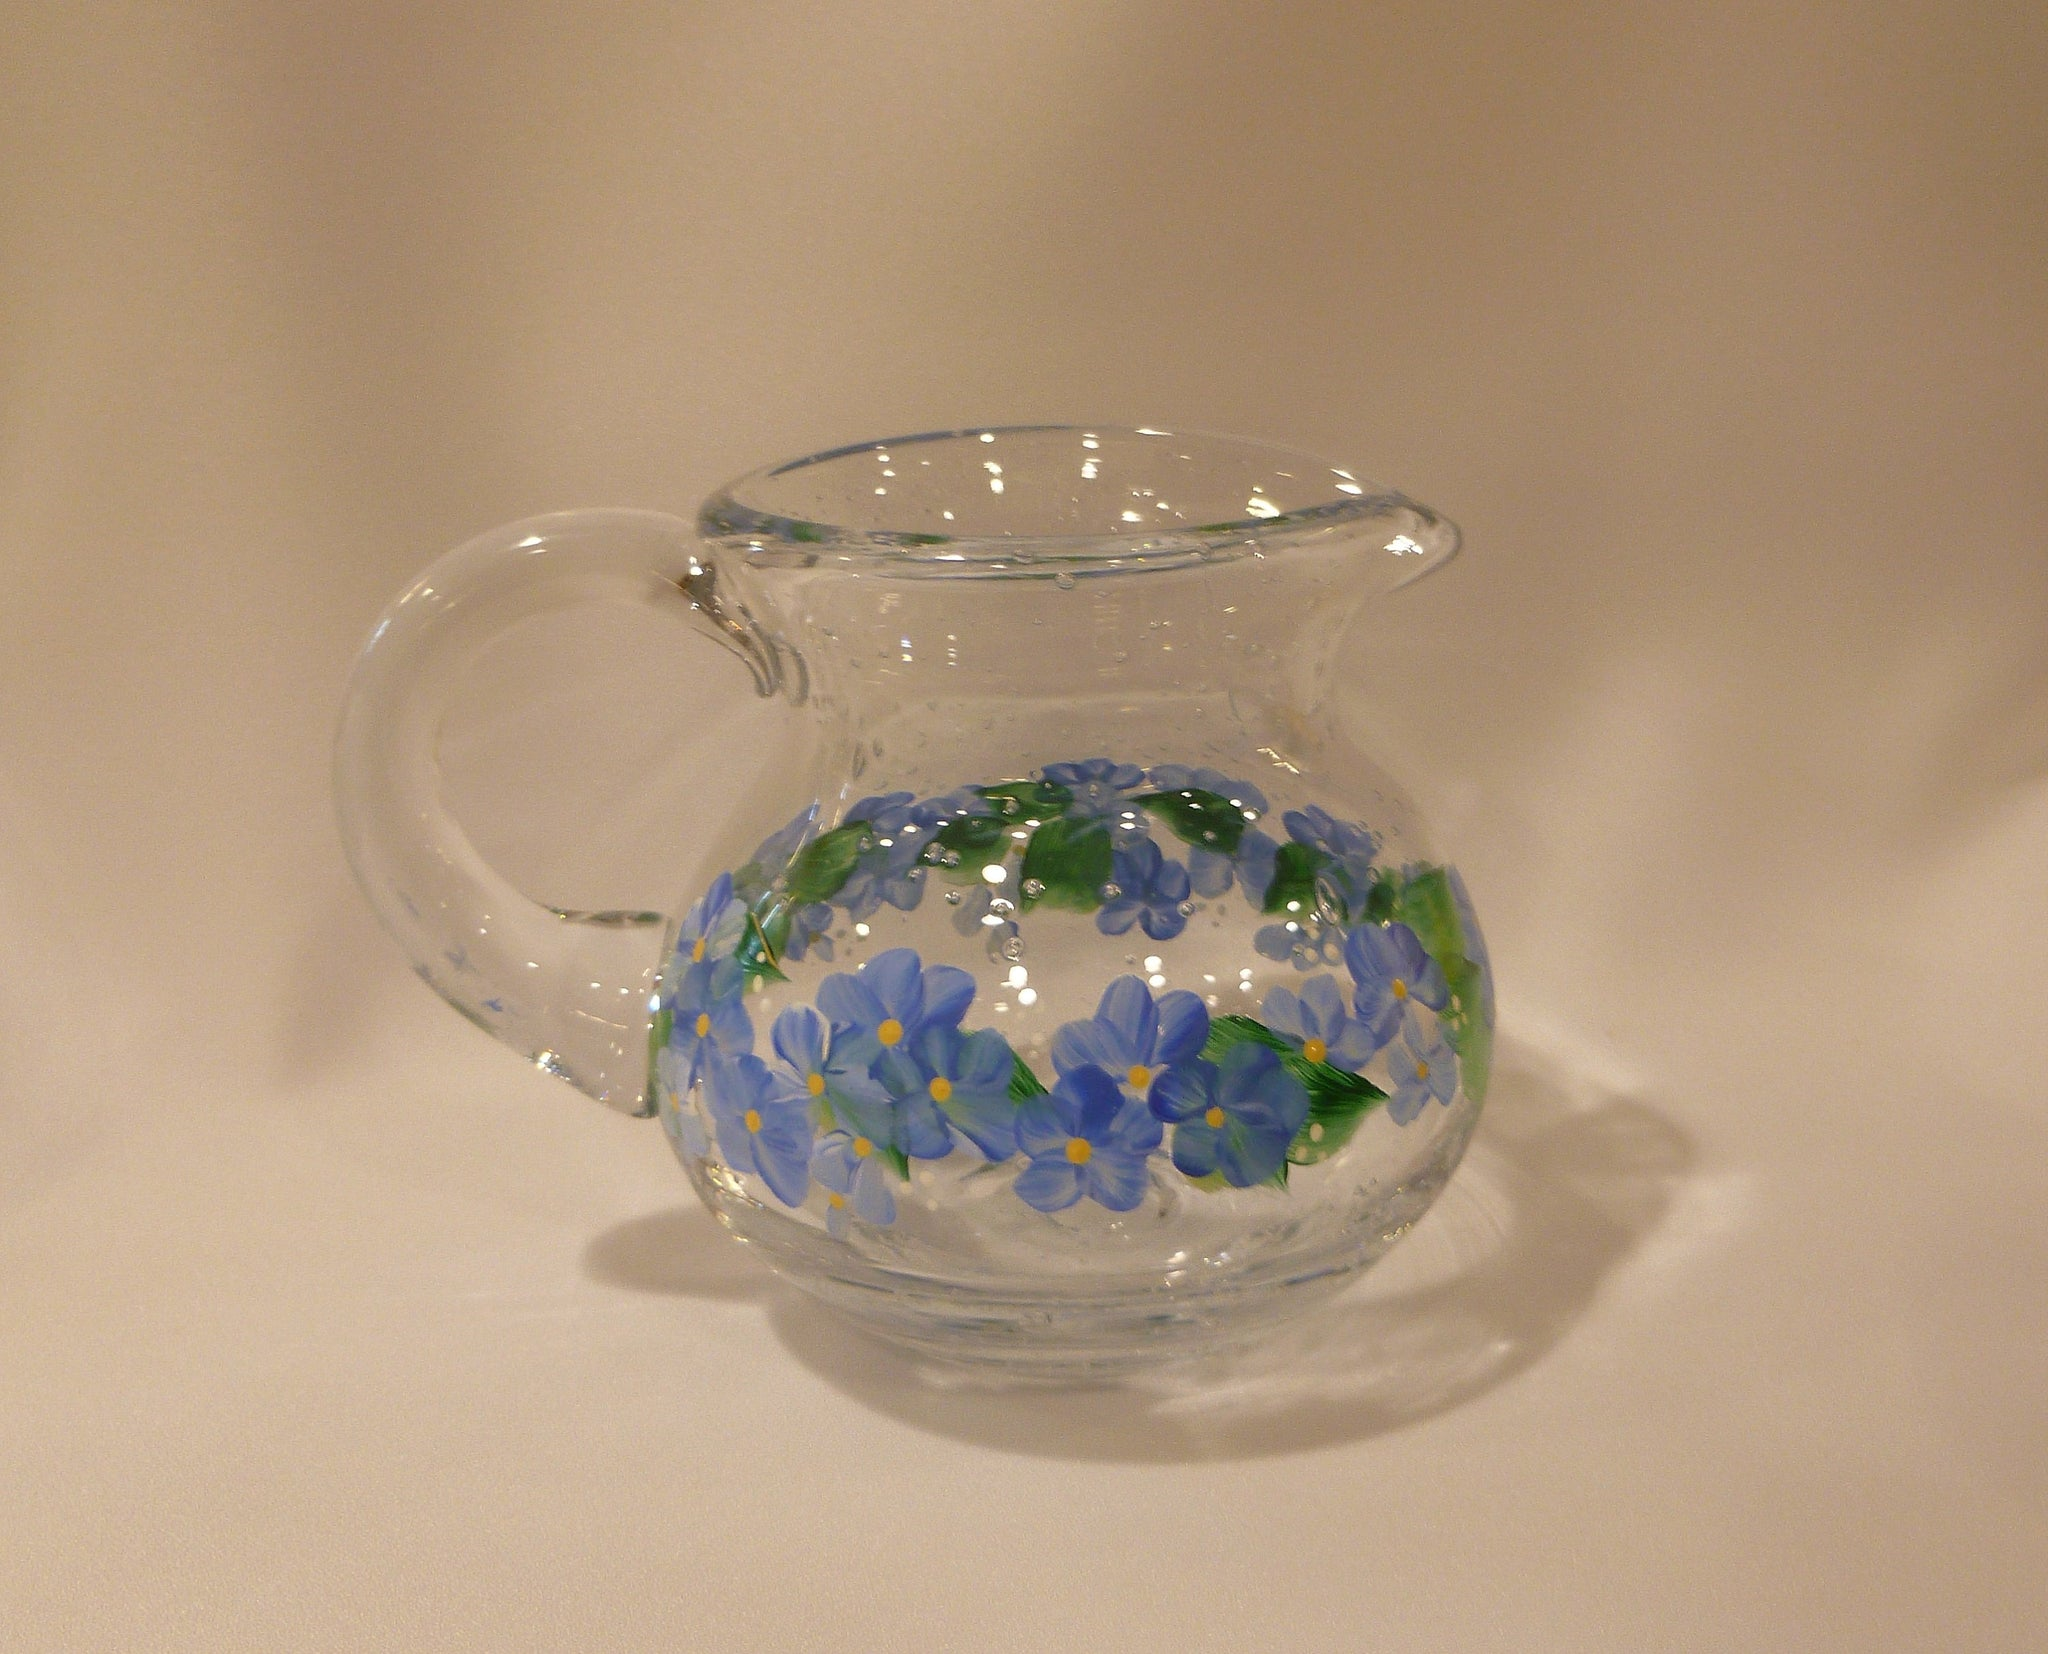 Hand Painted Small Glass Pitcher - Vase with Cornflower Blue Flowers